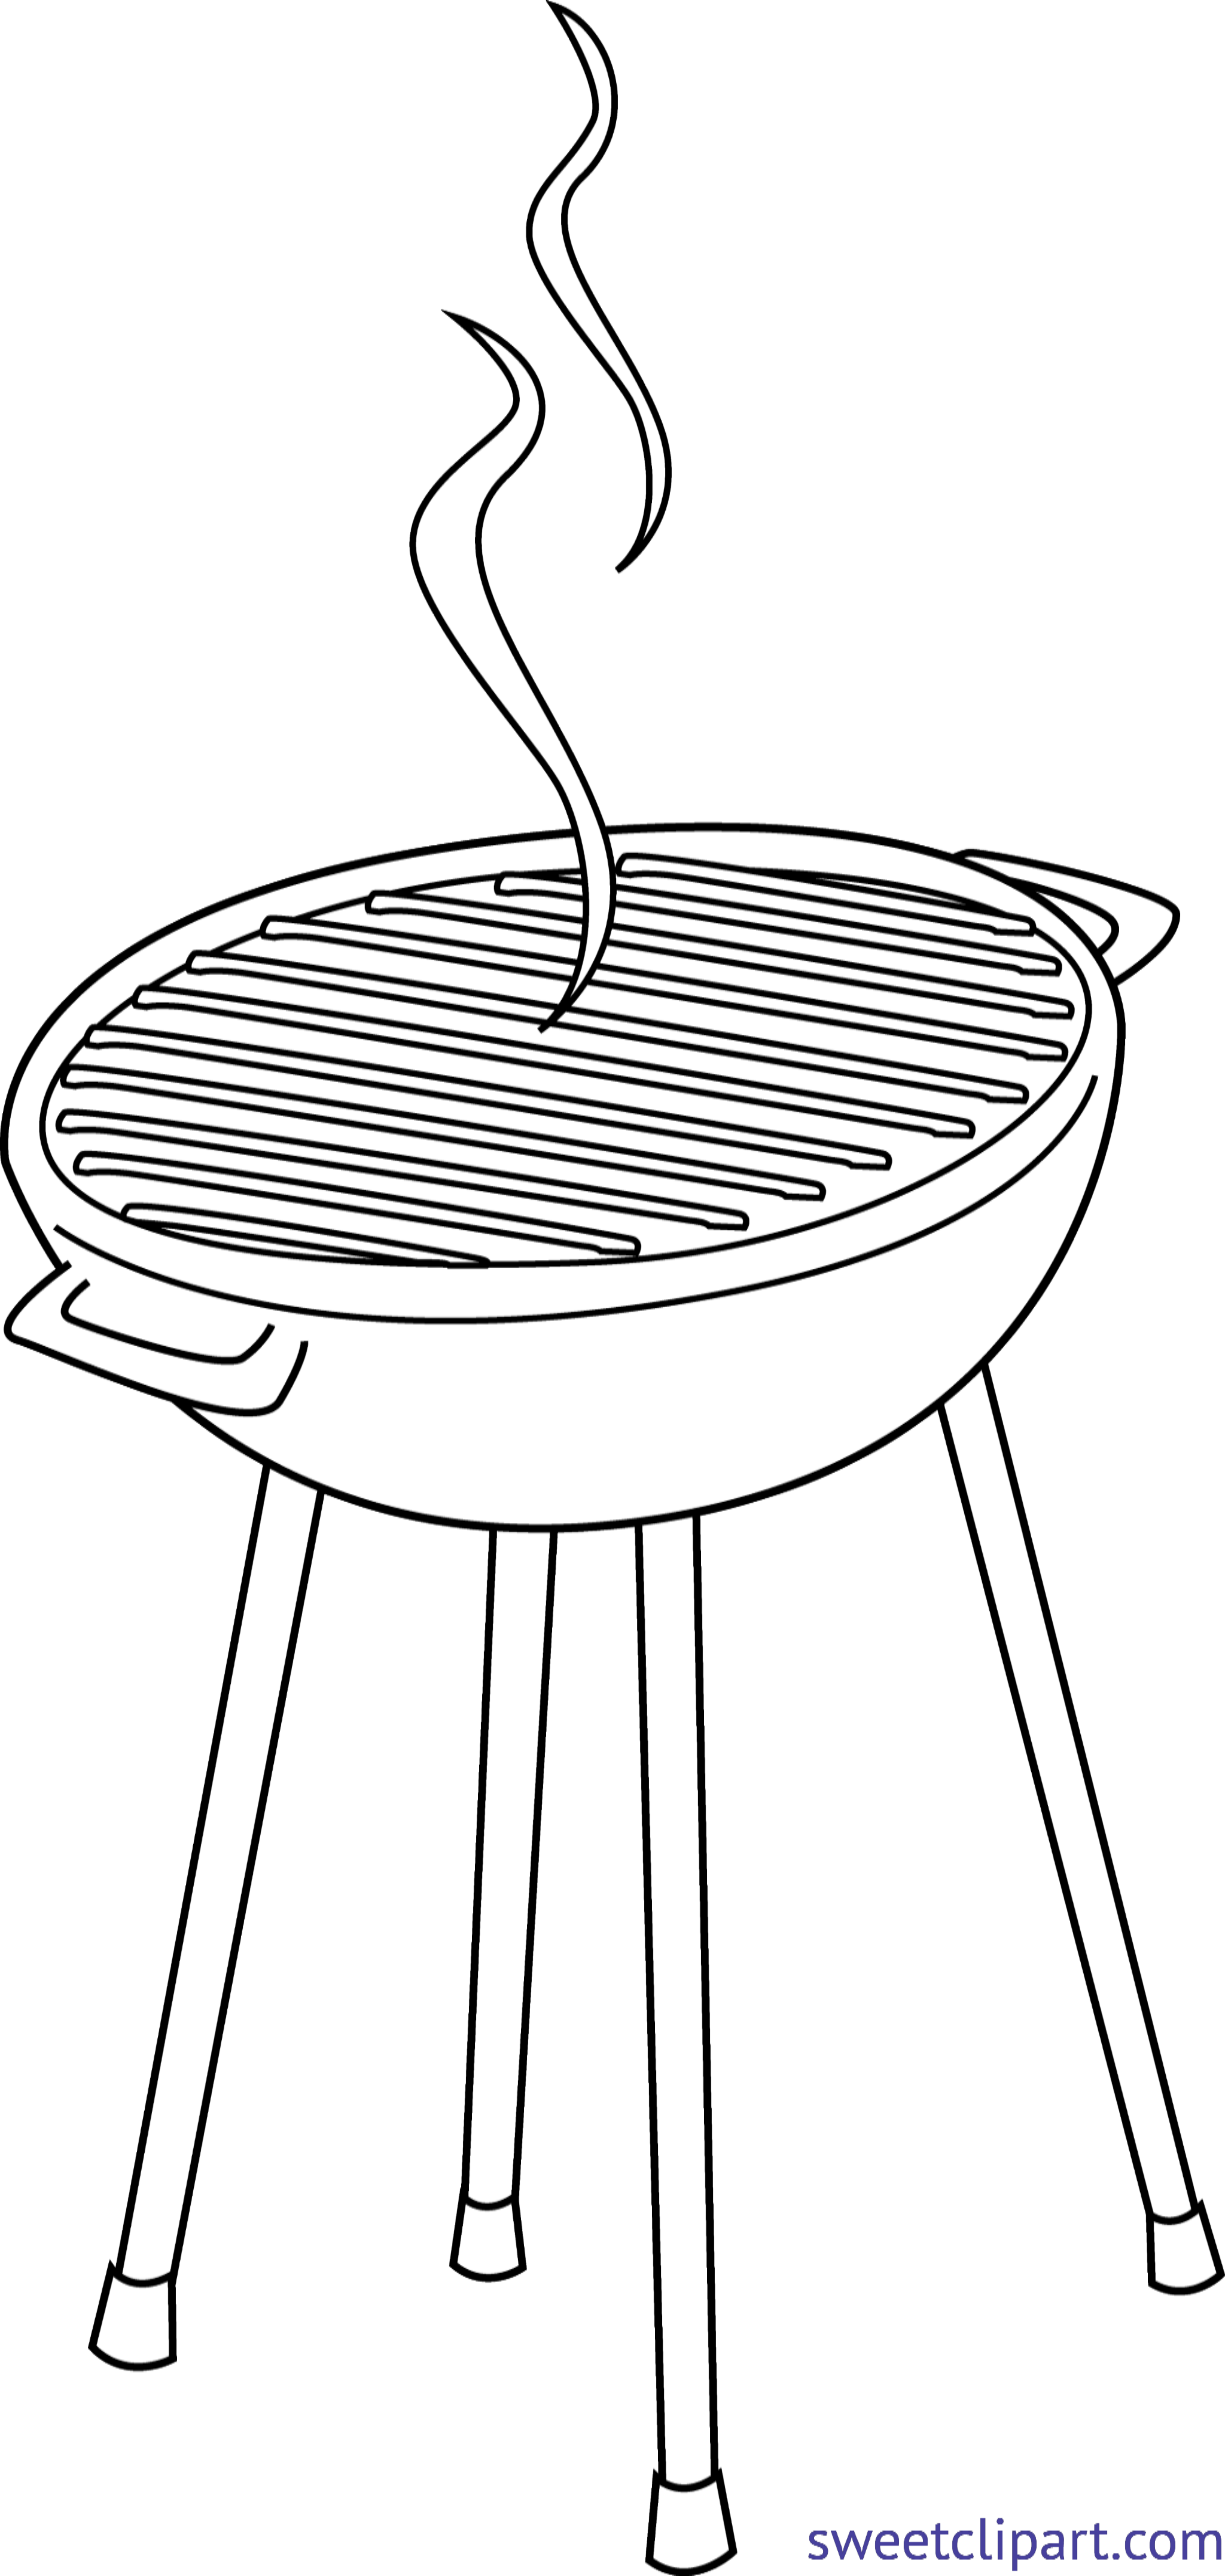 Bbq grill png clipart. Lineart clip art sweet